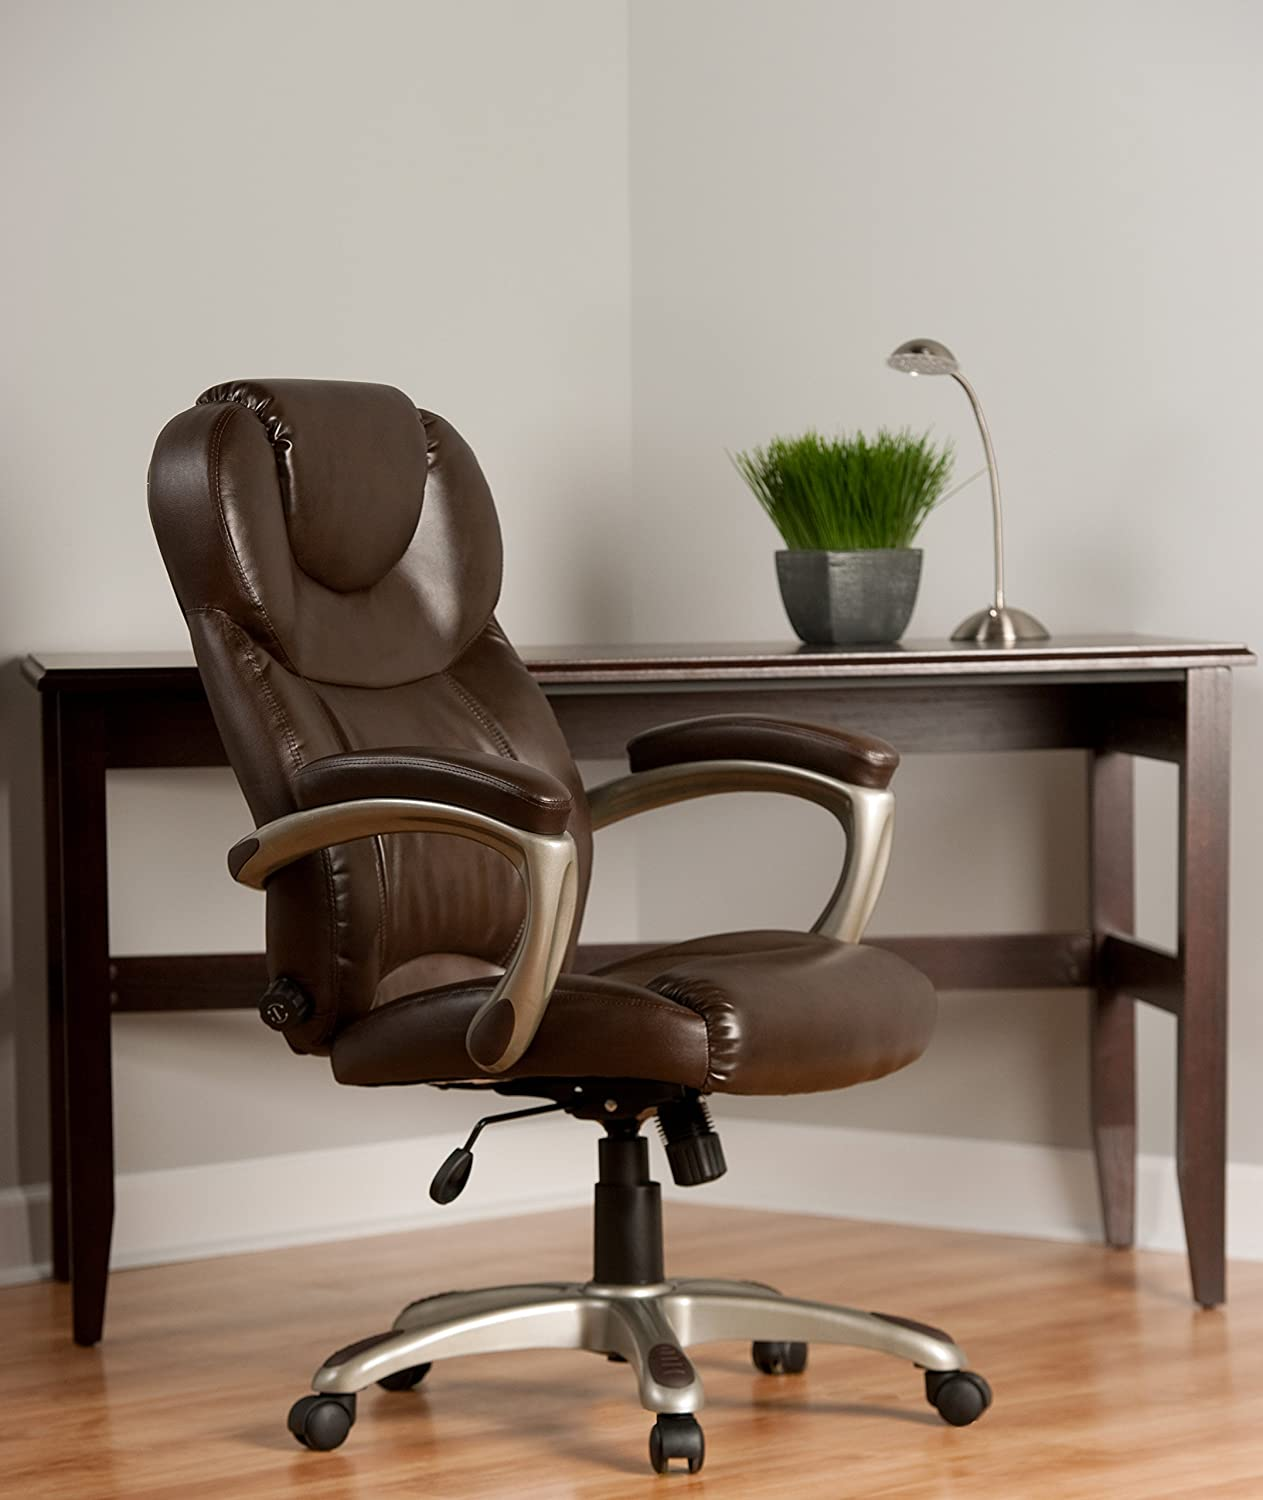 comfortable computer chairs. Amazon.com: Comfort Products Granton Leather Executive Chair With Adjustable Lumbar Support, Brown: Kitchen \u0026 Dining Comfortable Computer Chairs